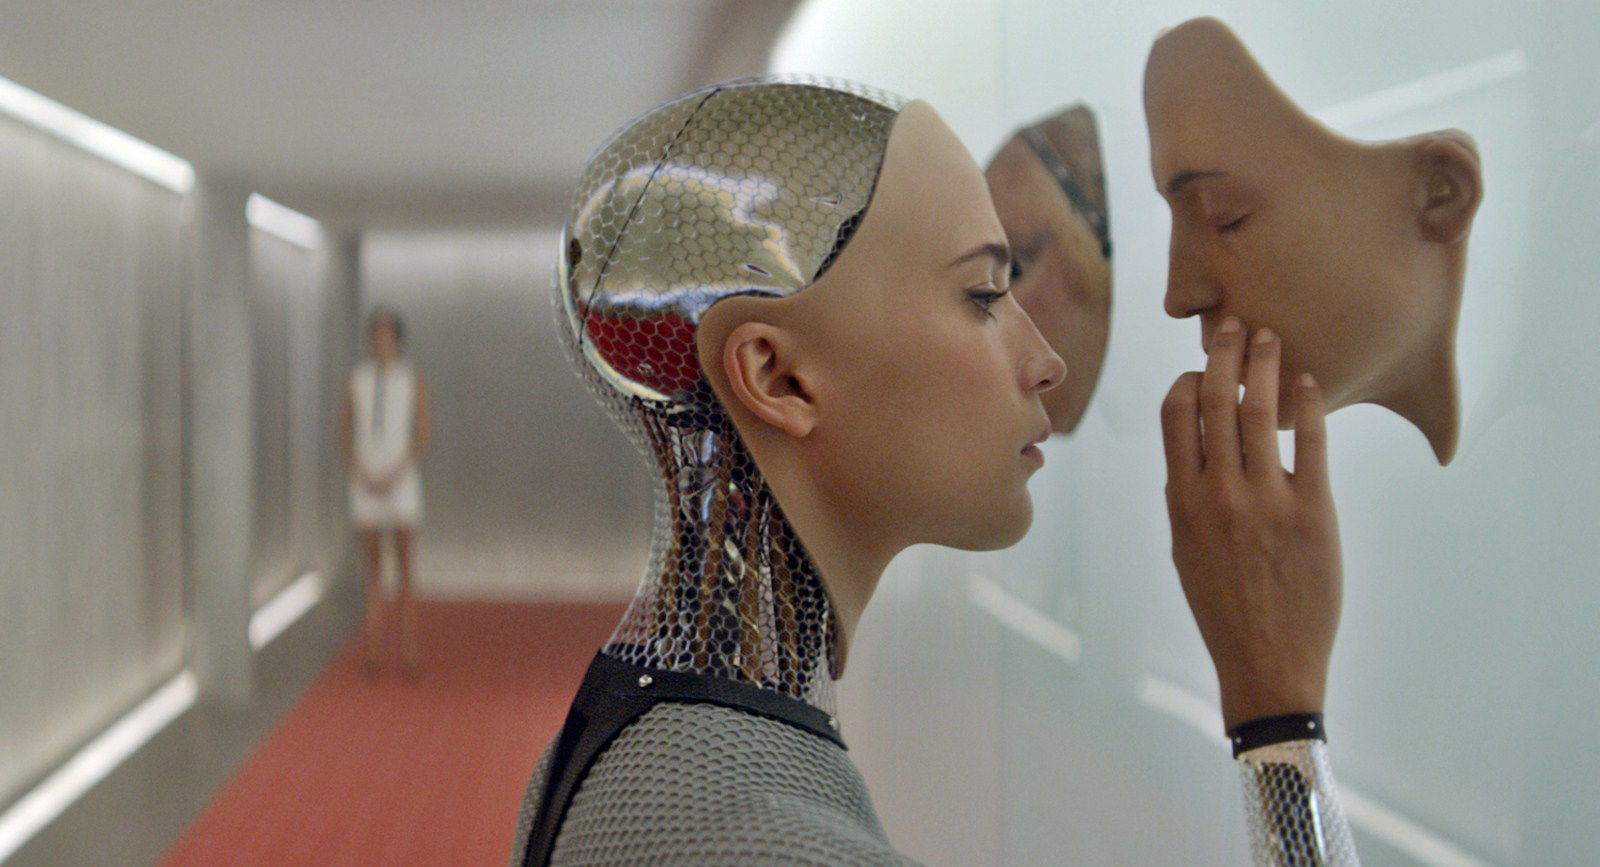 Ex_Machina_Oscar_VFX_05.jpg